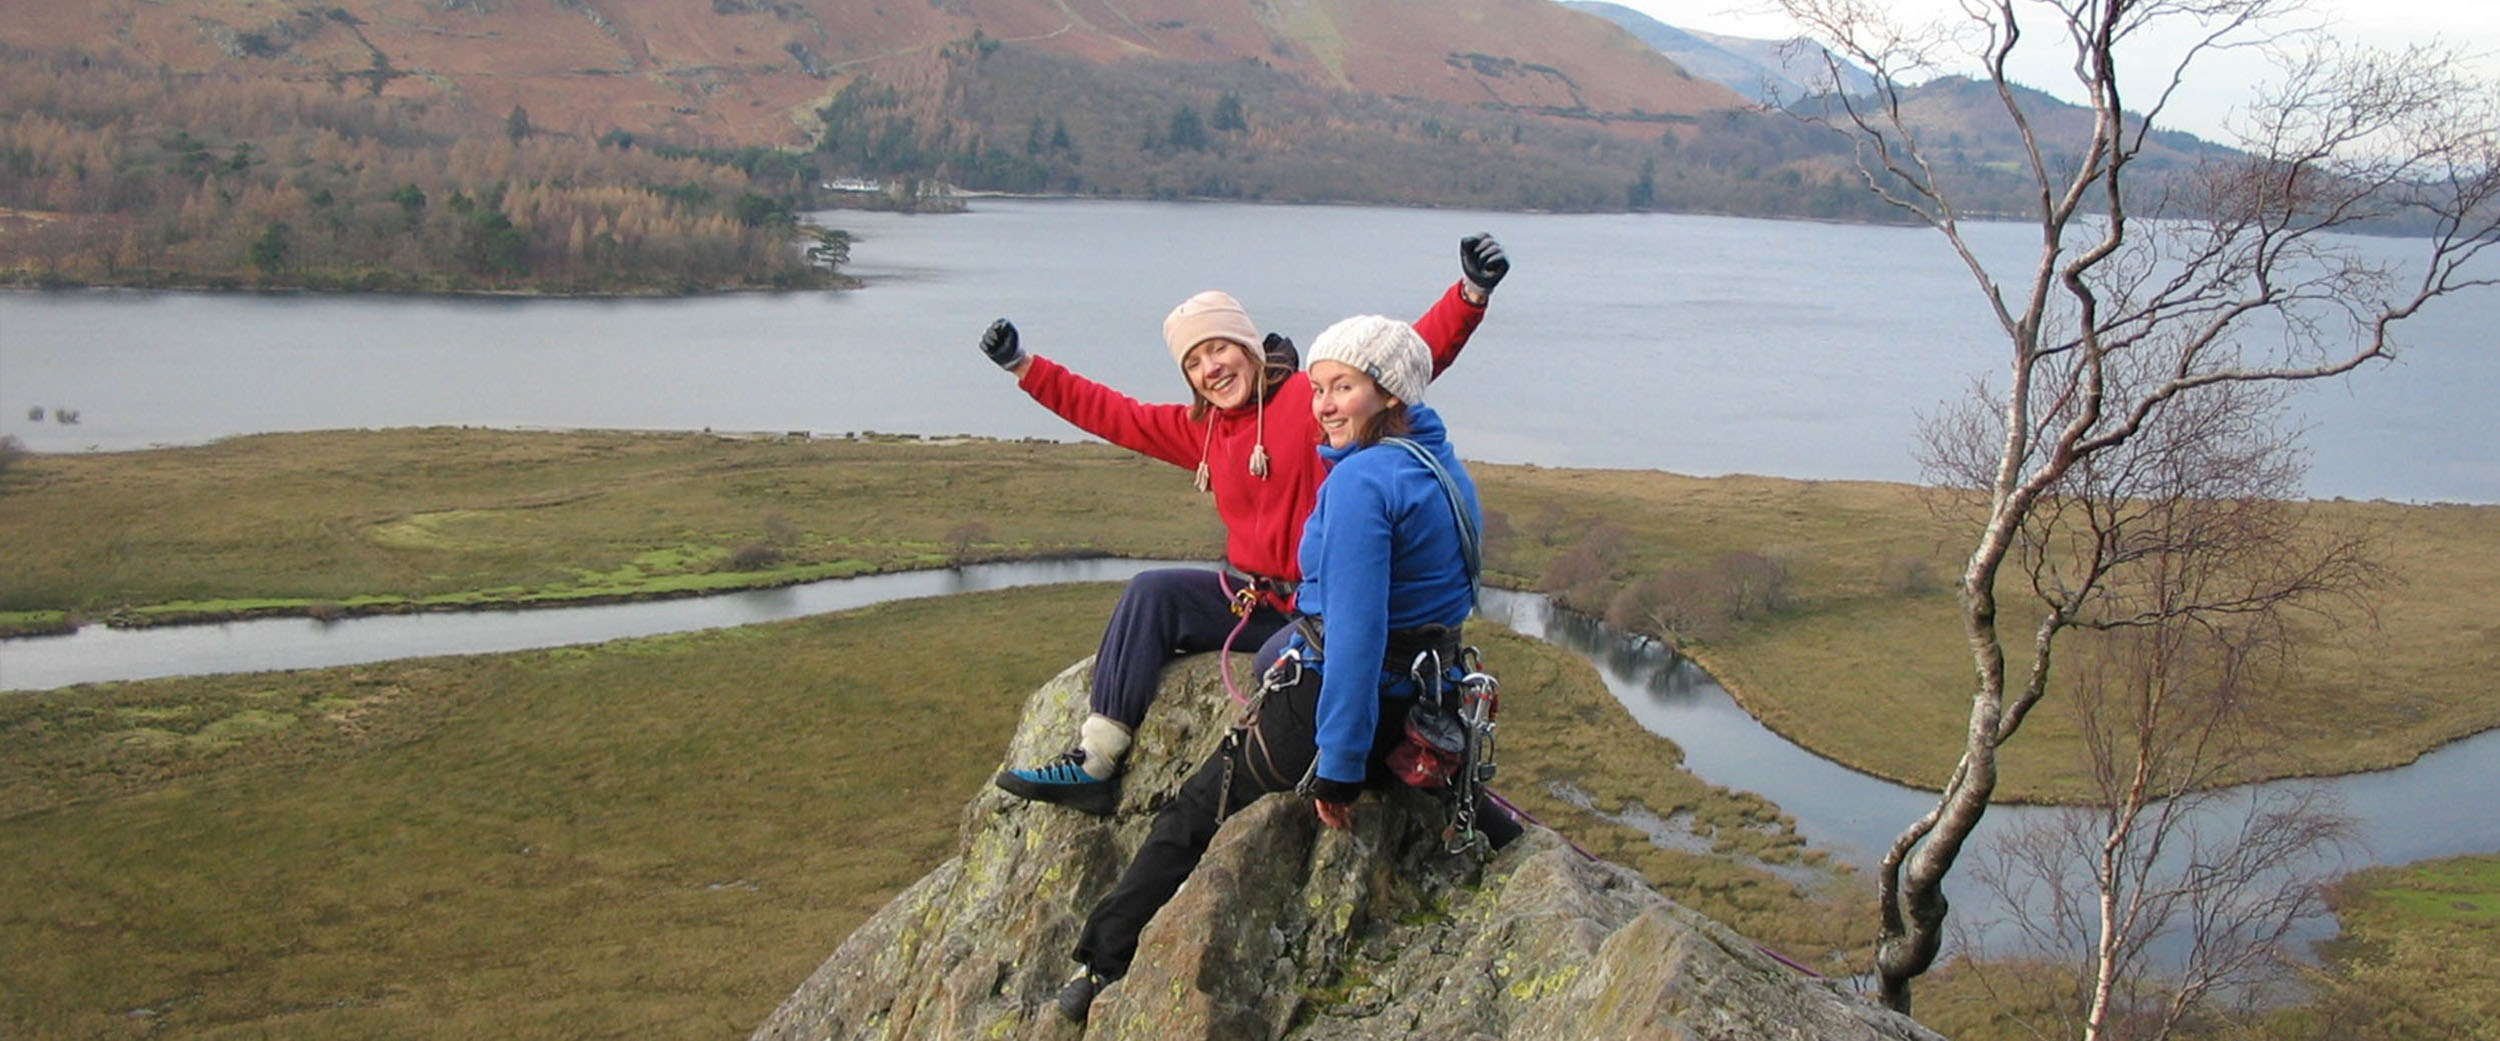 Two young ladies punching the air and congratulating each other having climbed a difficult cliff-face